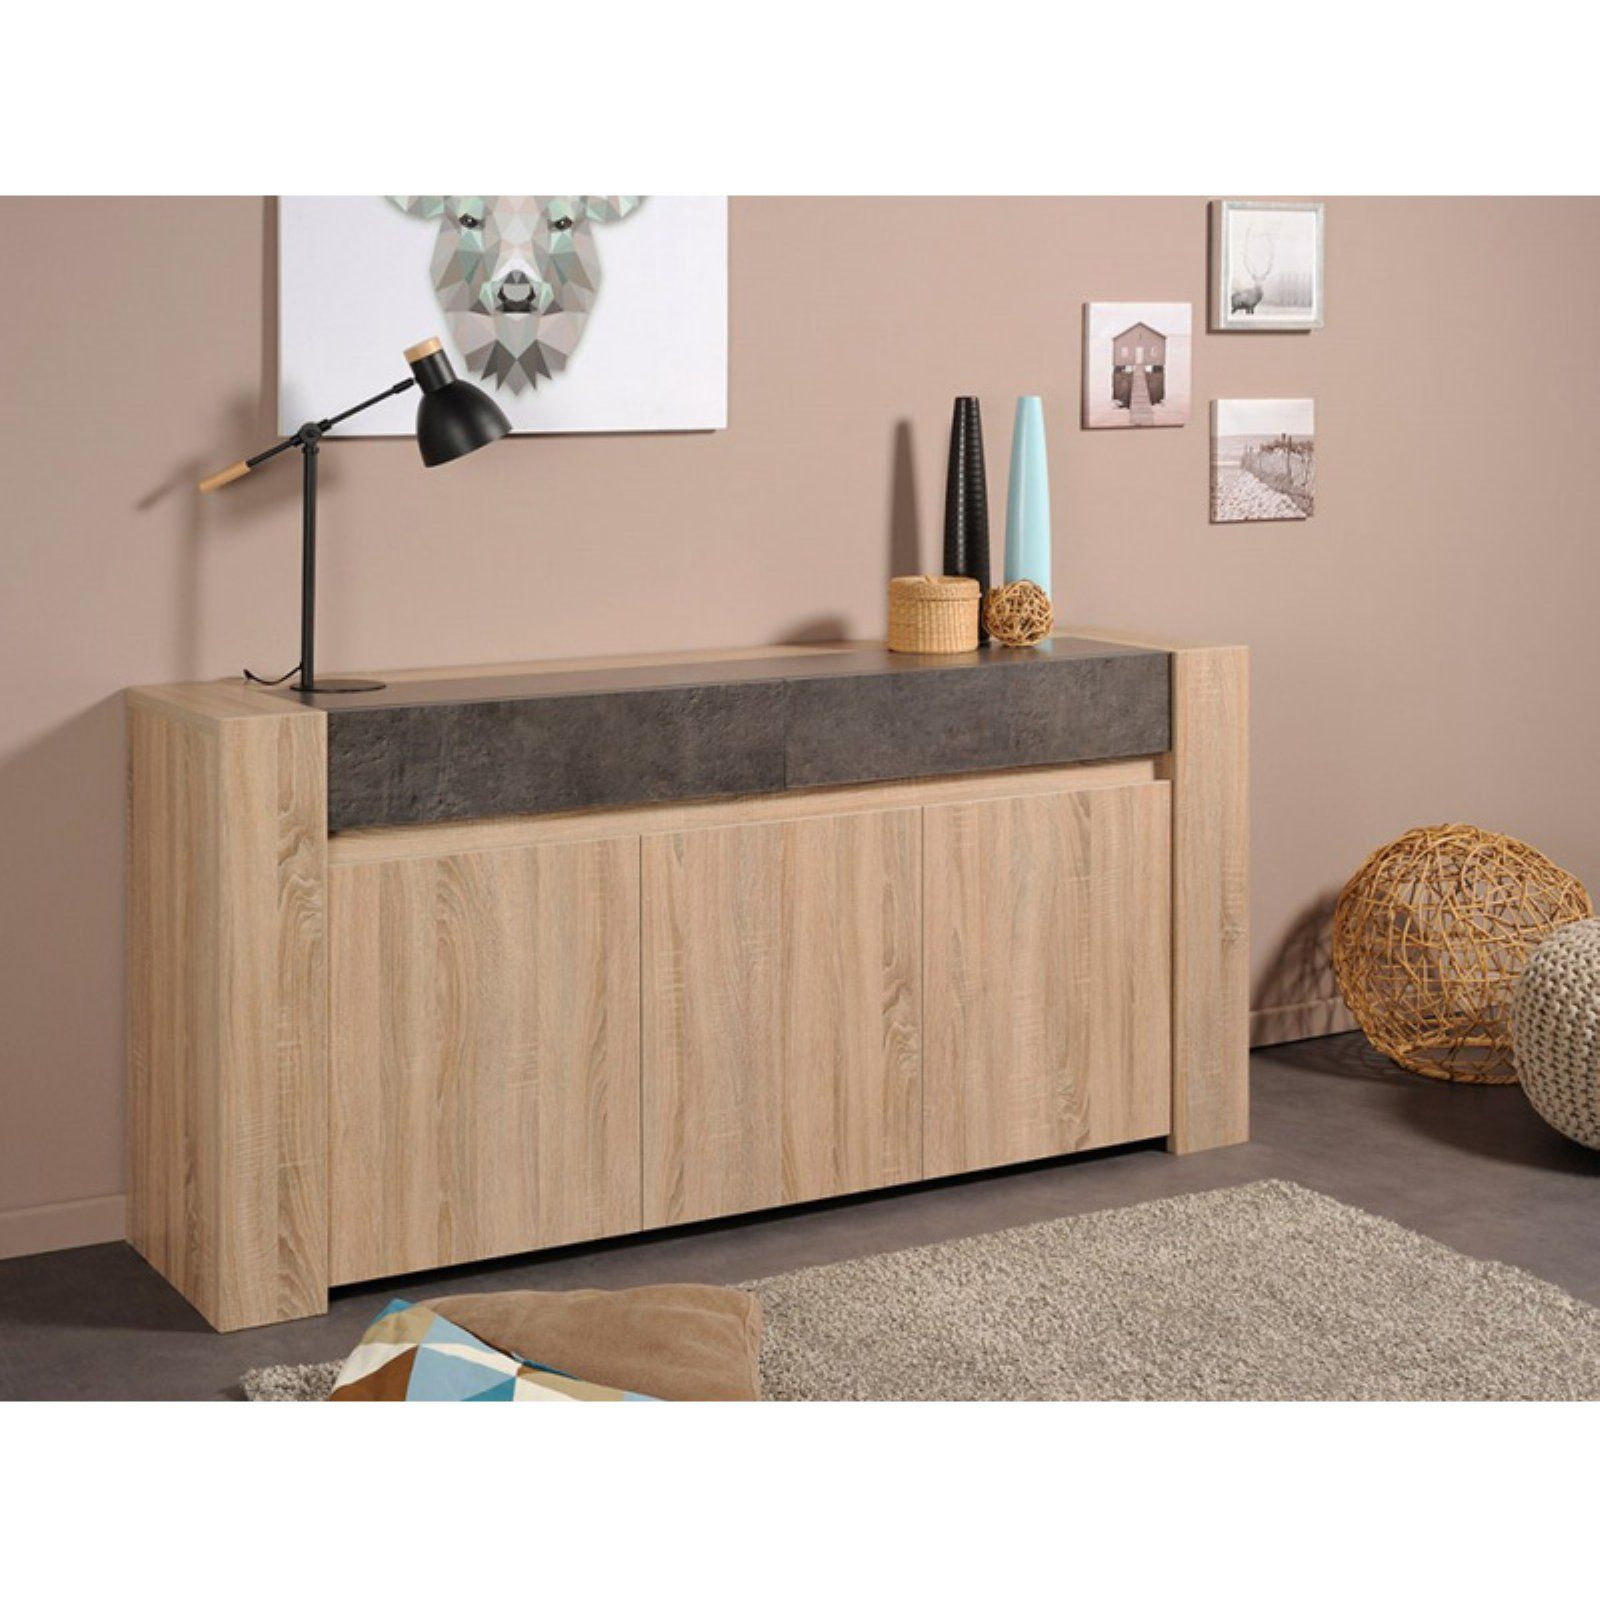 Parisot Spare Sideboard With 2 Doors And 1 Drawer Sideboard